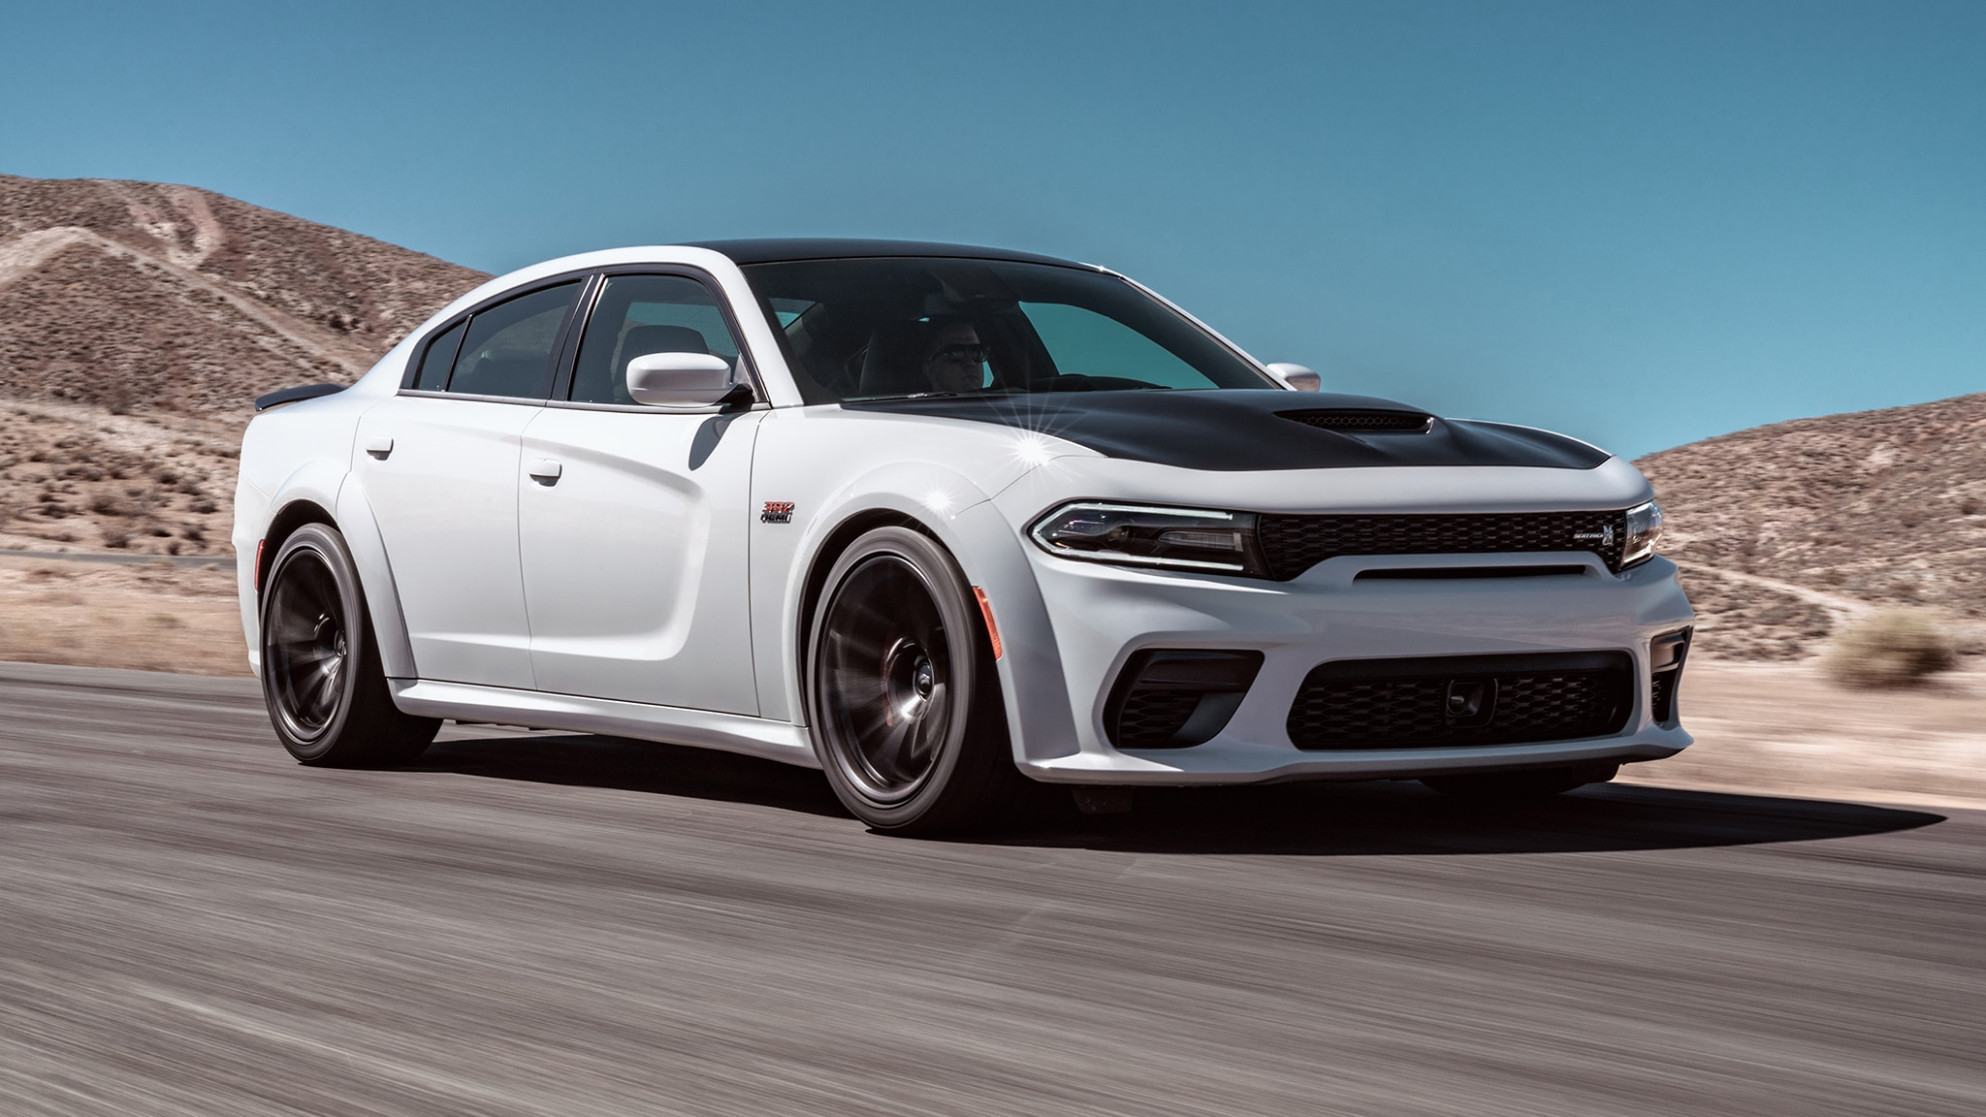 9 Dodge Charger Prices Announced for Daytona, Hellcat Widebody ...